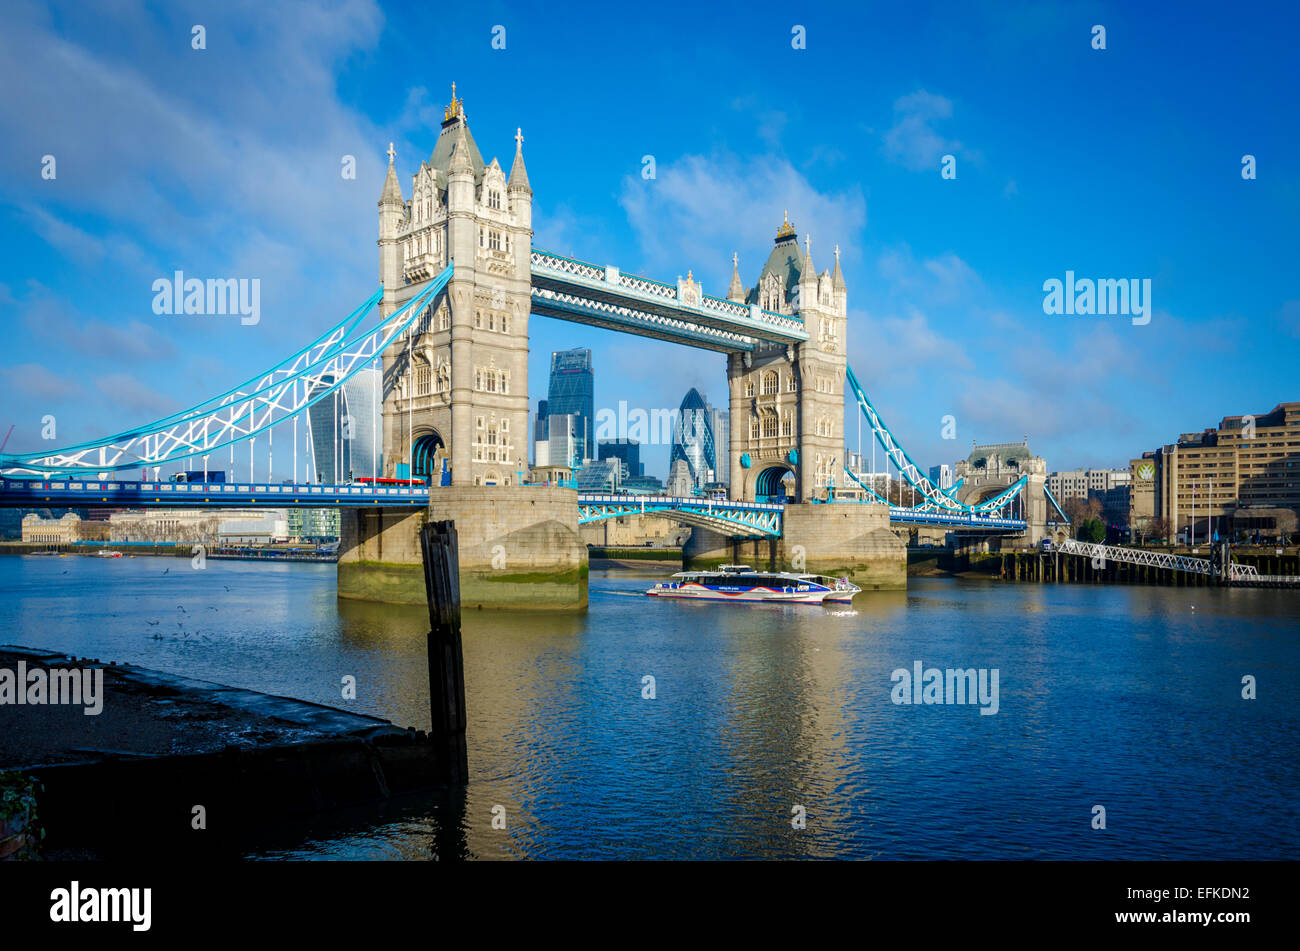 Tower Bridge, Londres, Reino Unido. Imagen De Stock